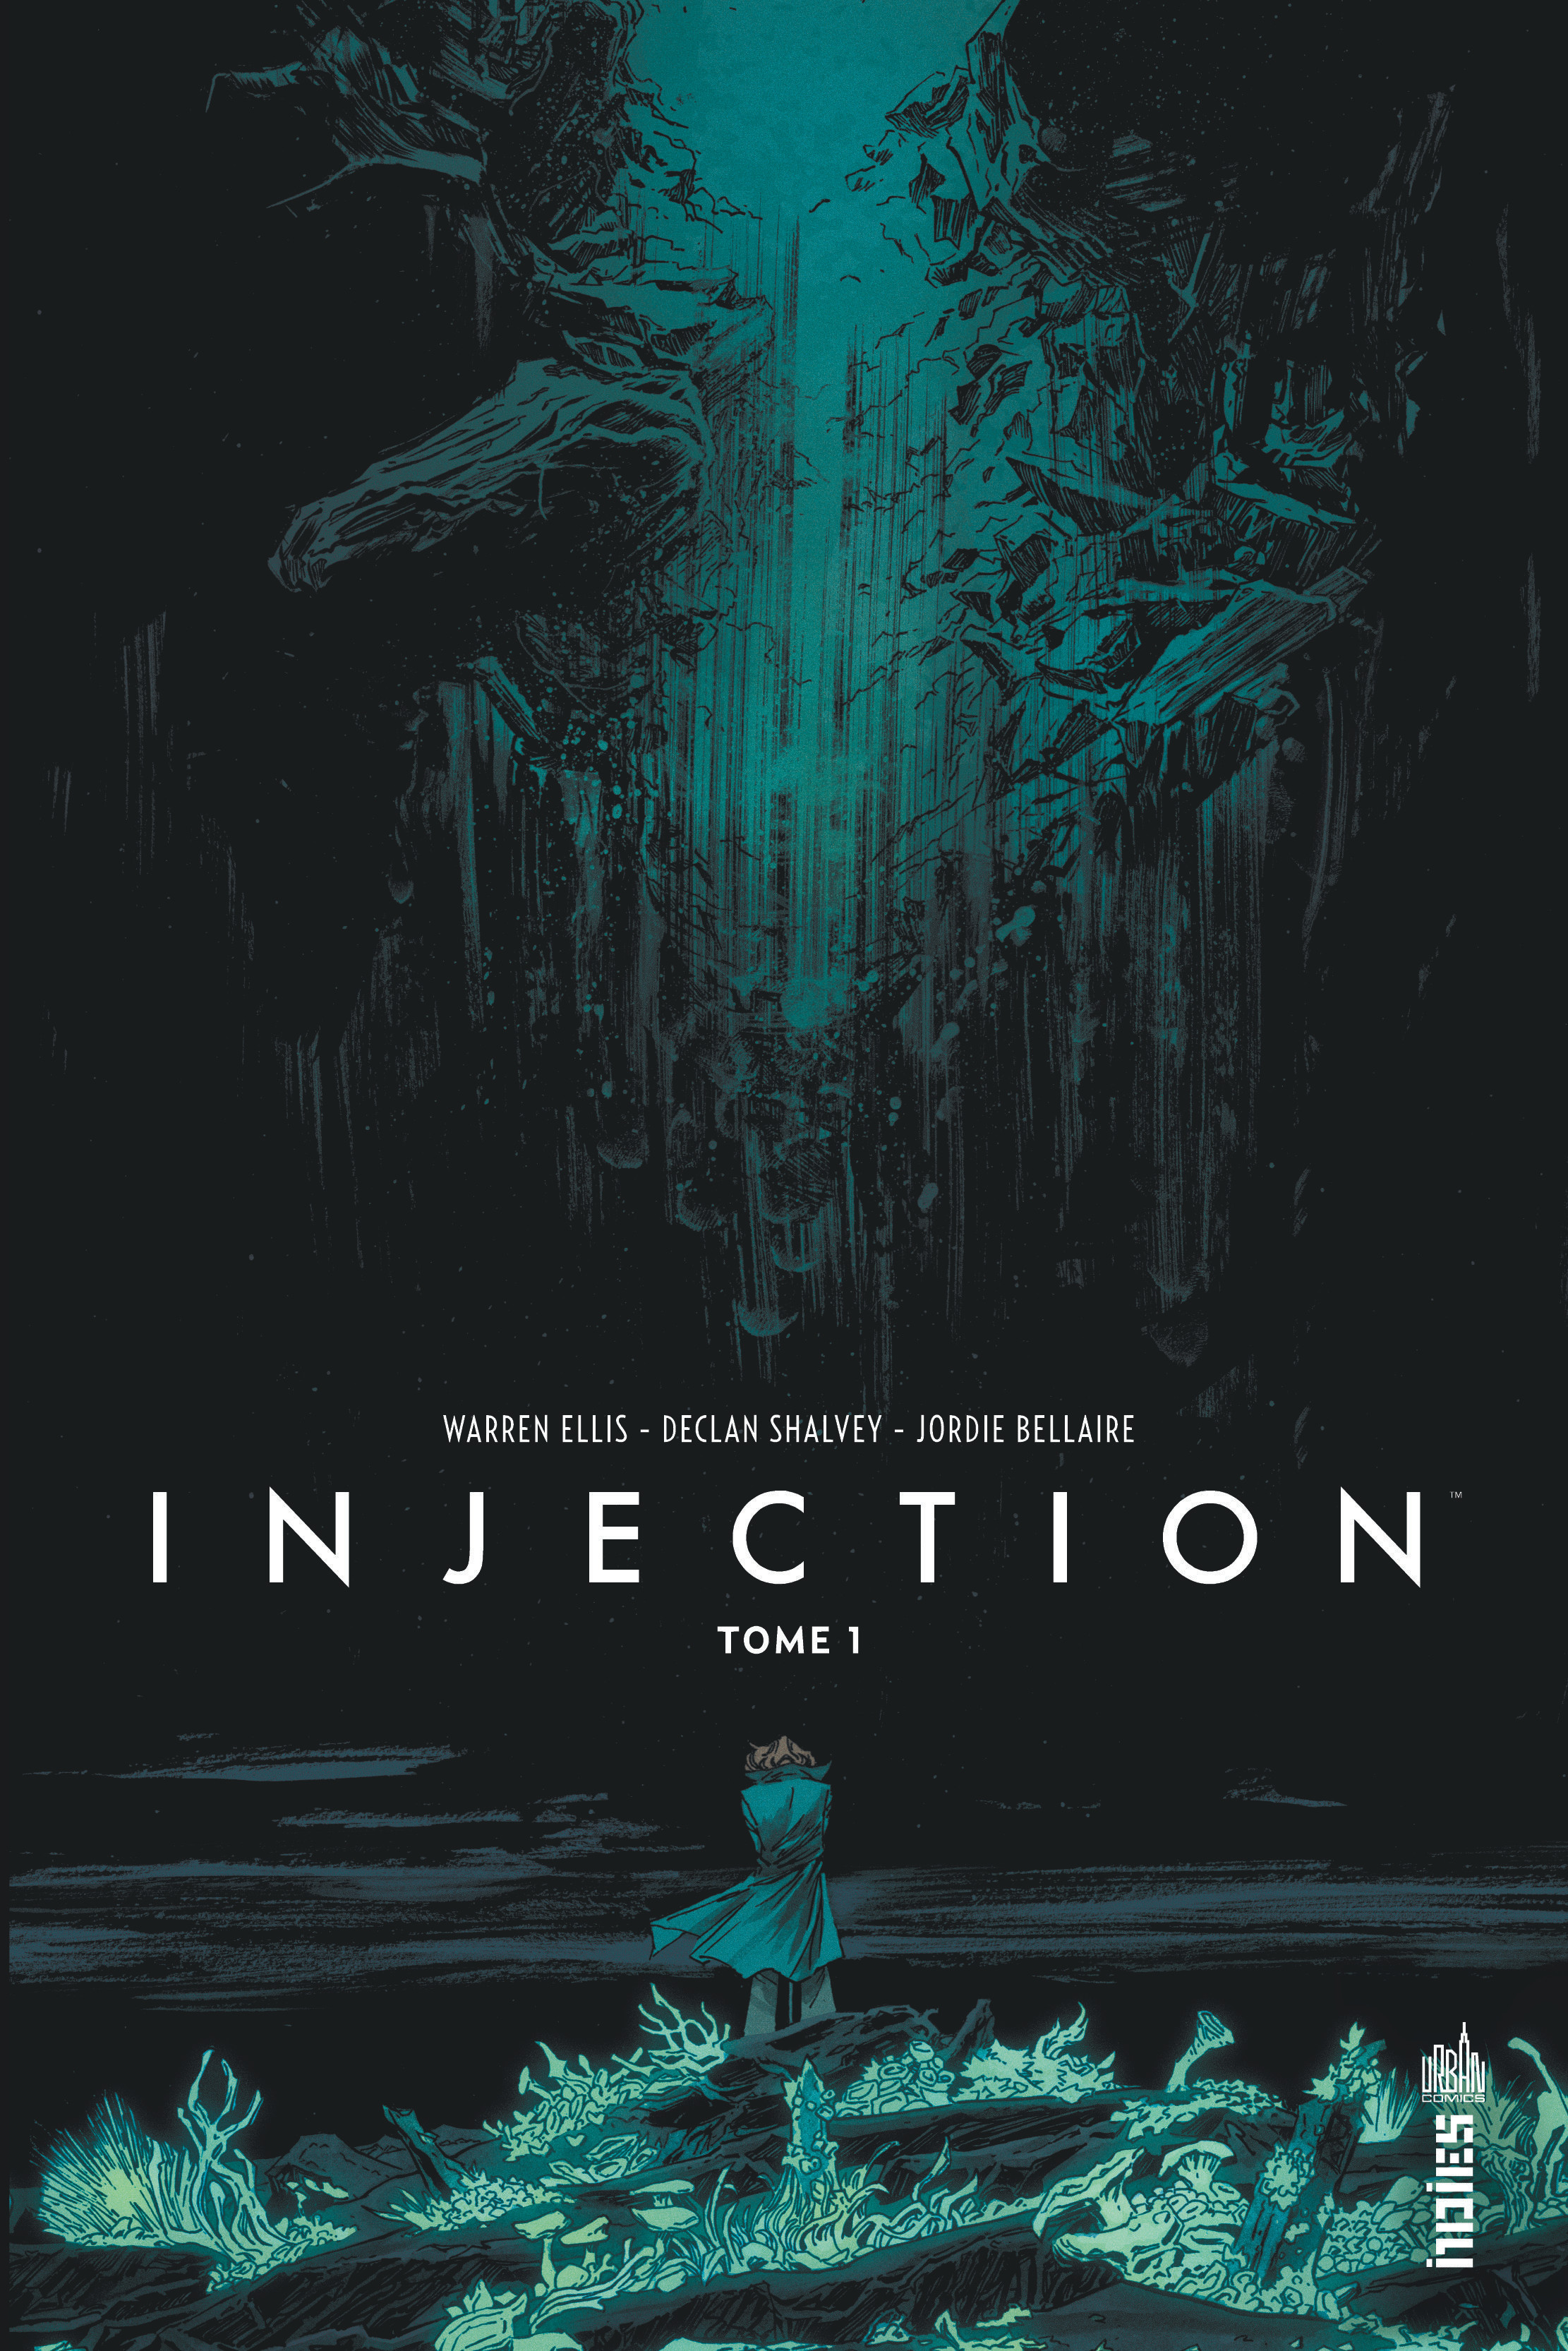 INJECTION TOME 1